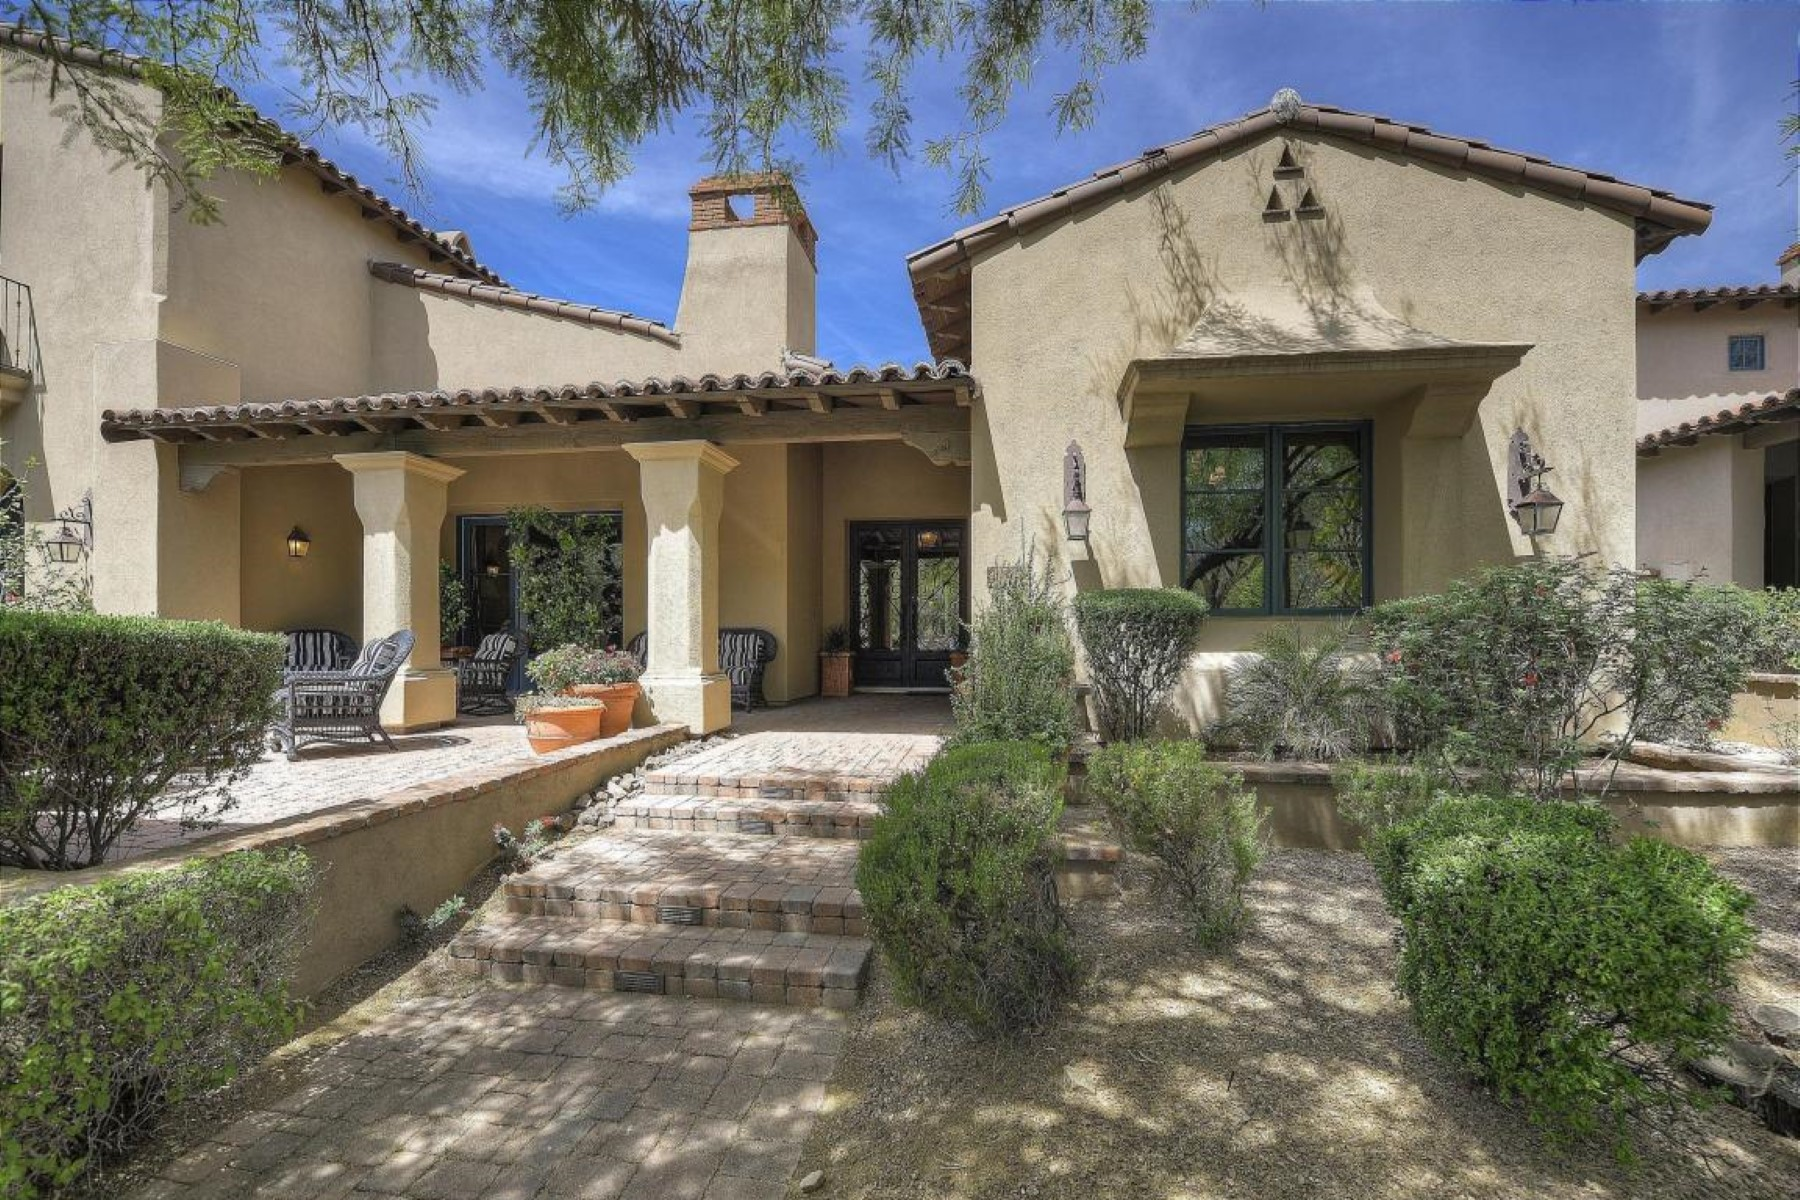 Townhouse for Sale at Gorgeous former Park Villa model located on Jacaranda Park 19992 N 101st Pl Scottsdale, Arizona 85255 United States